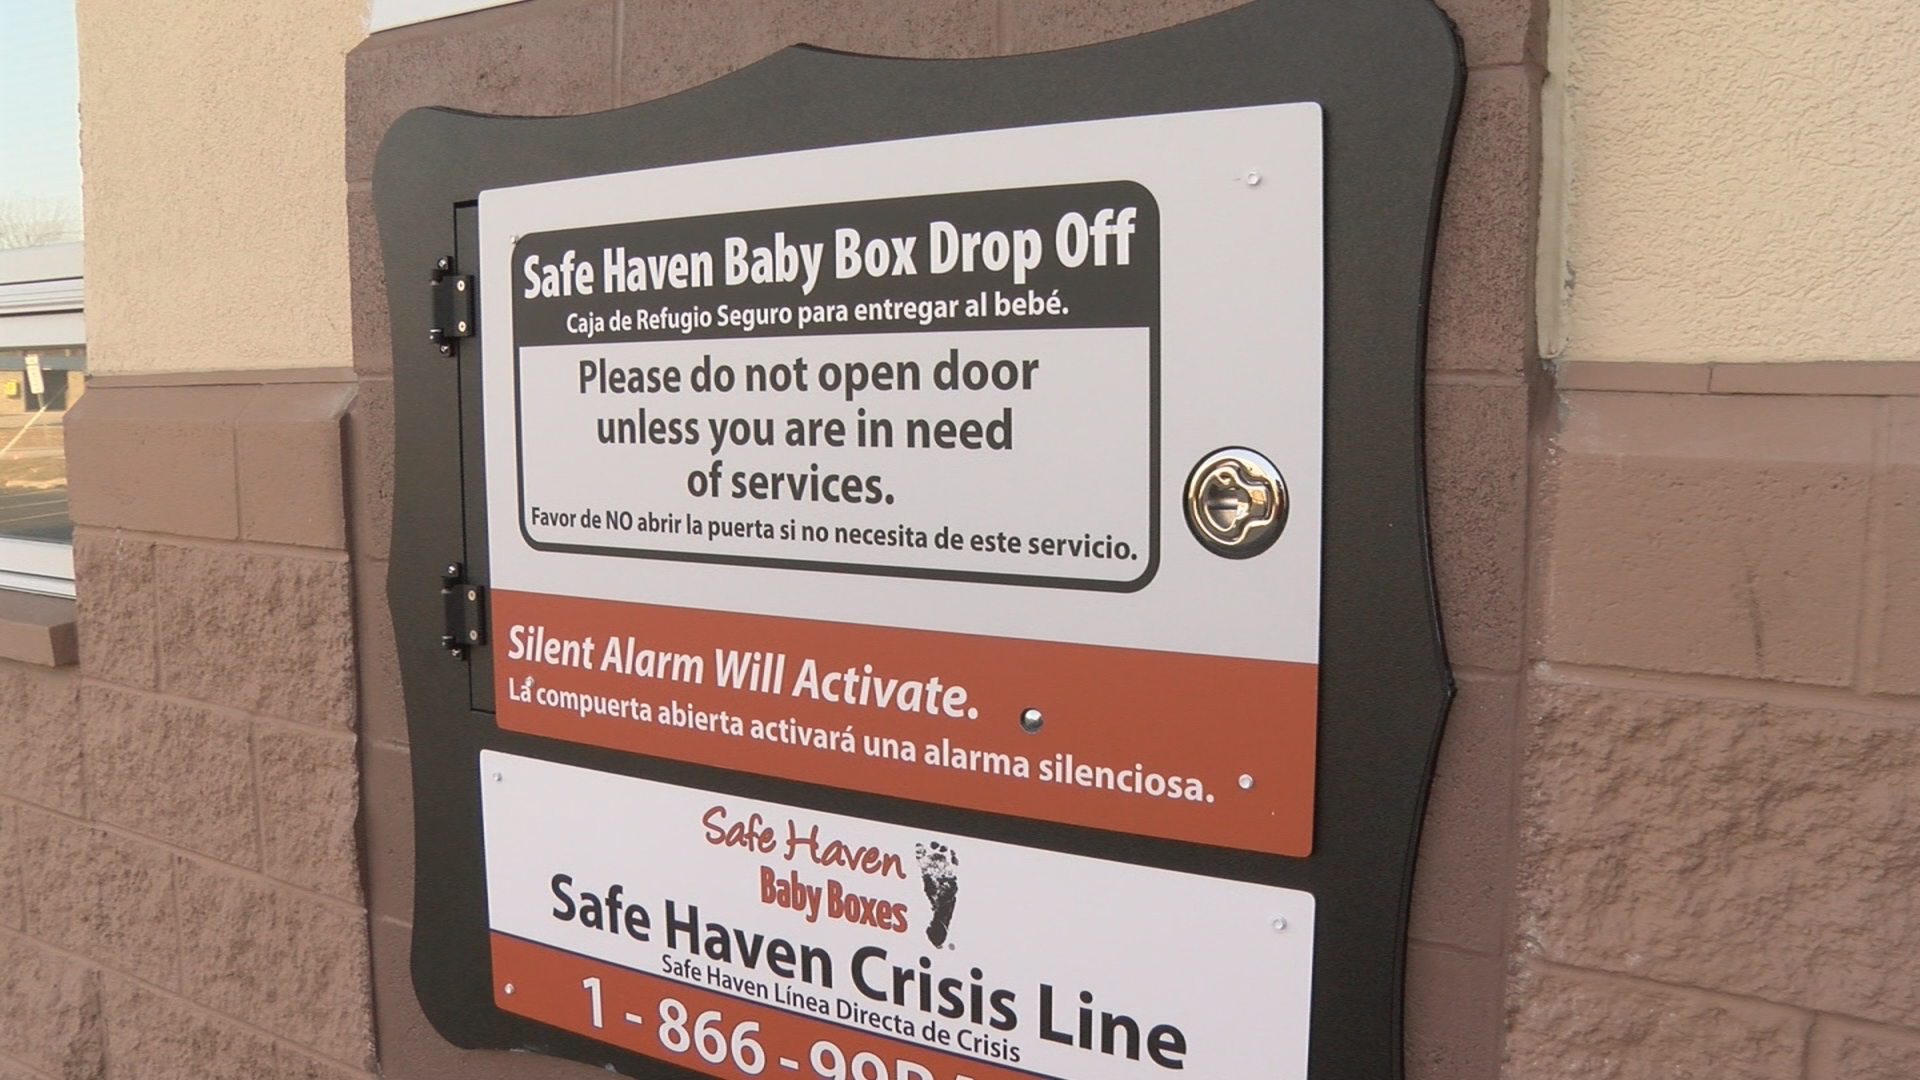 Newborn girl retrieved from baby box; fire officials say system worked flawlessly